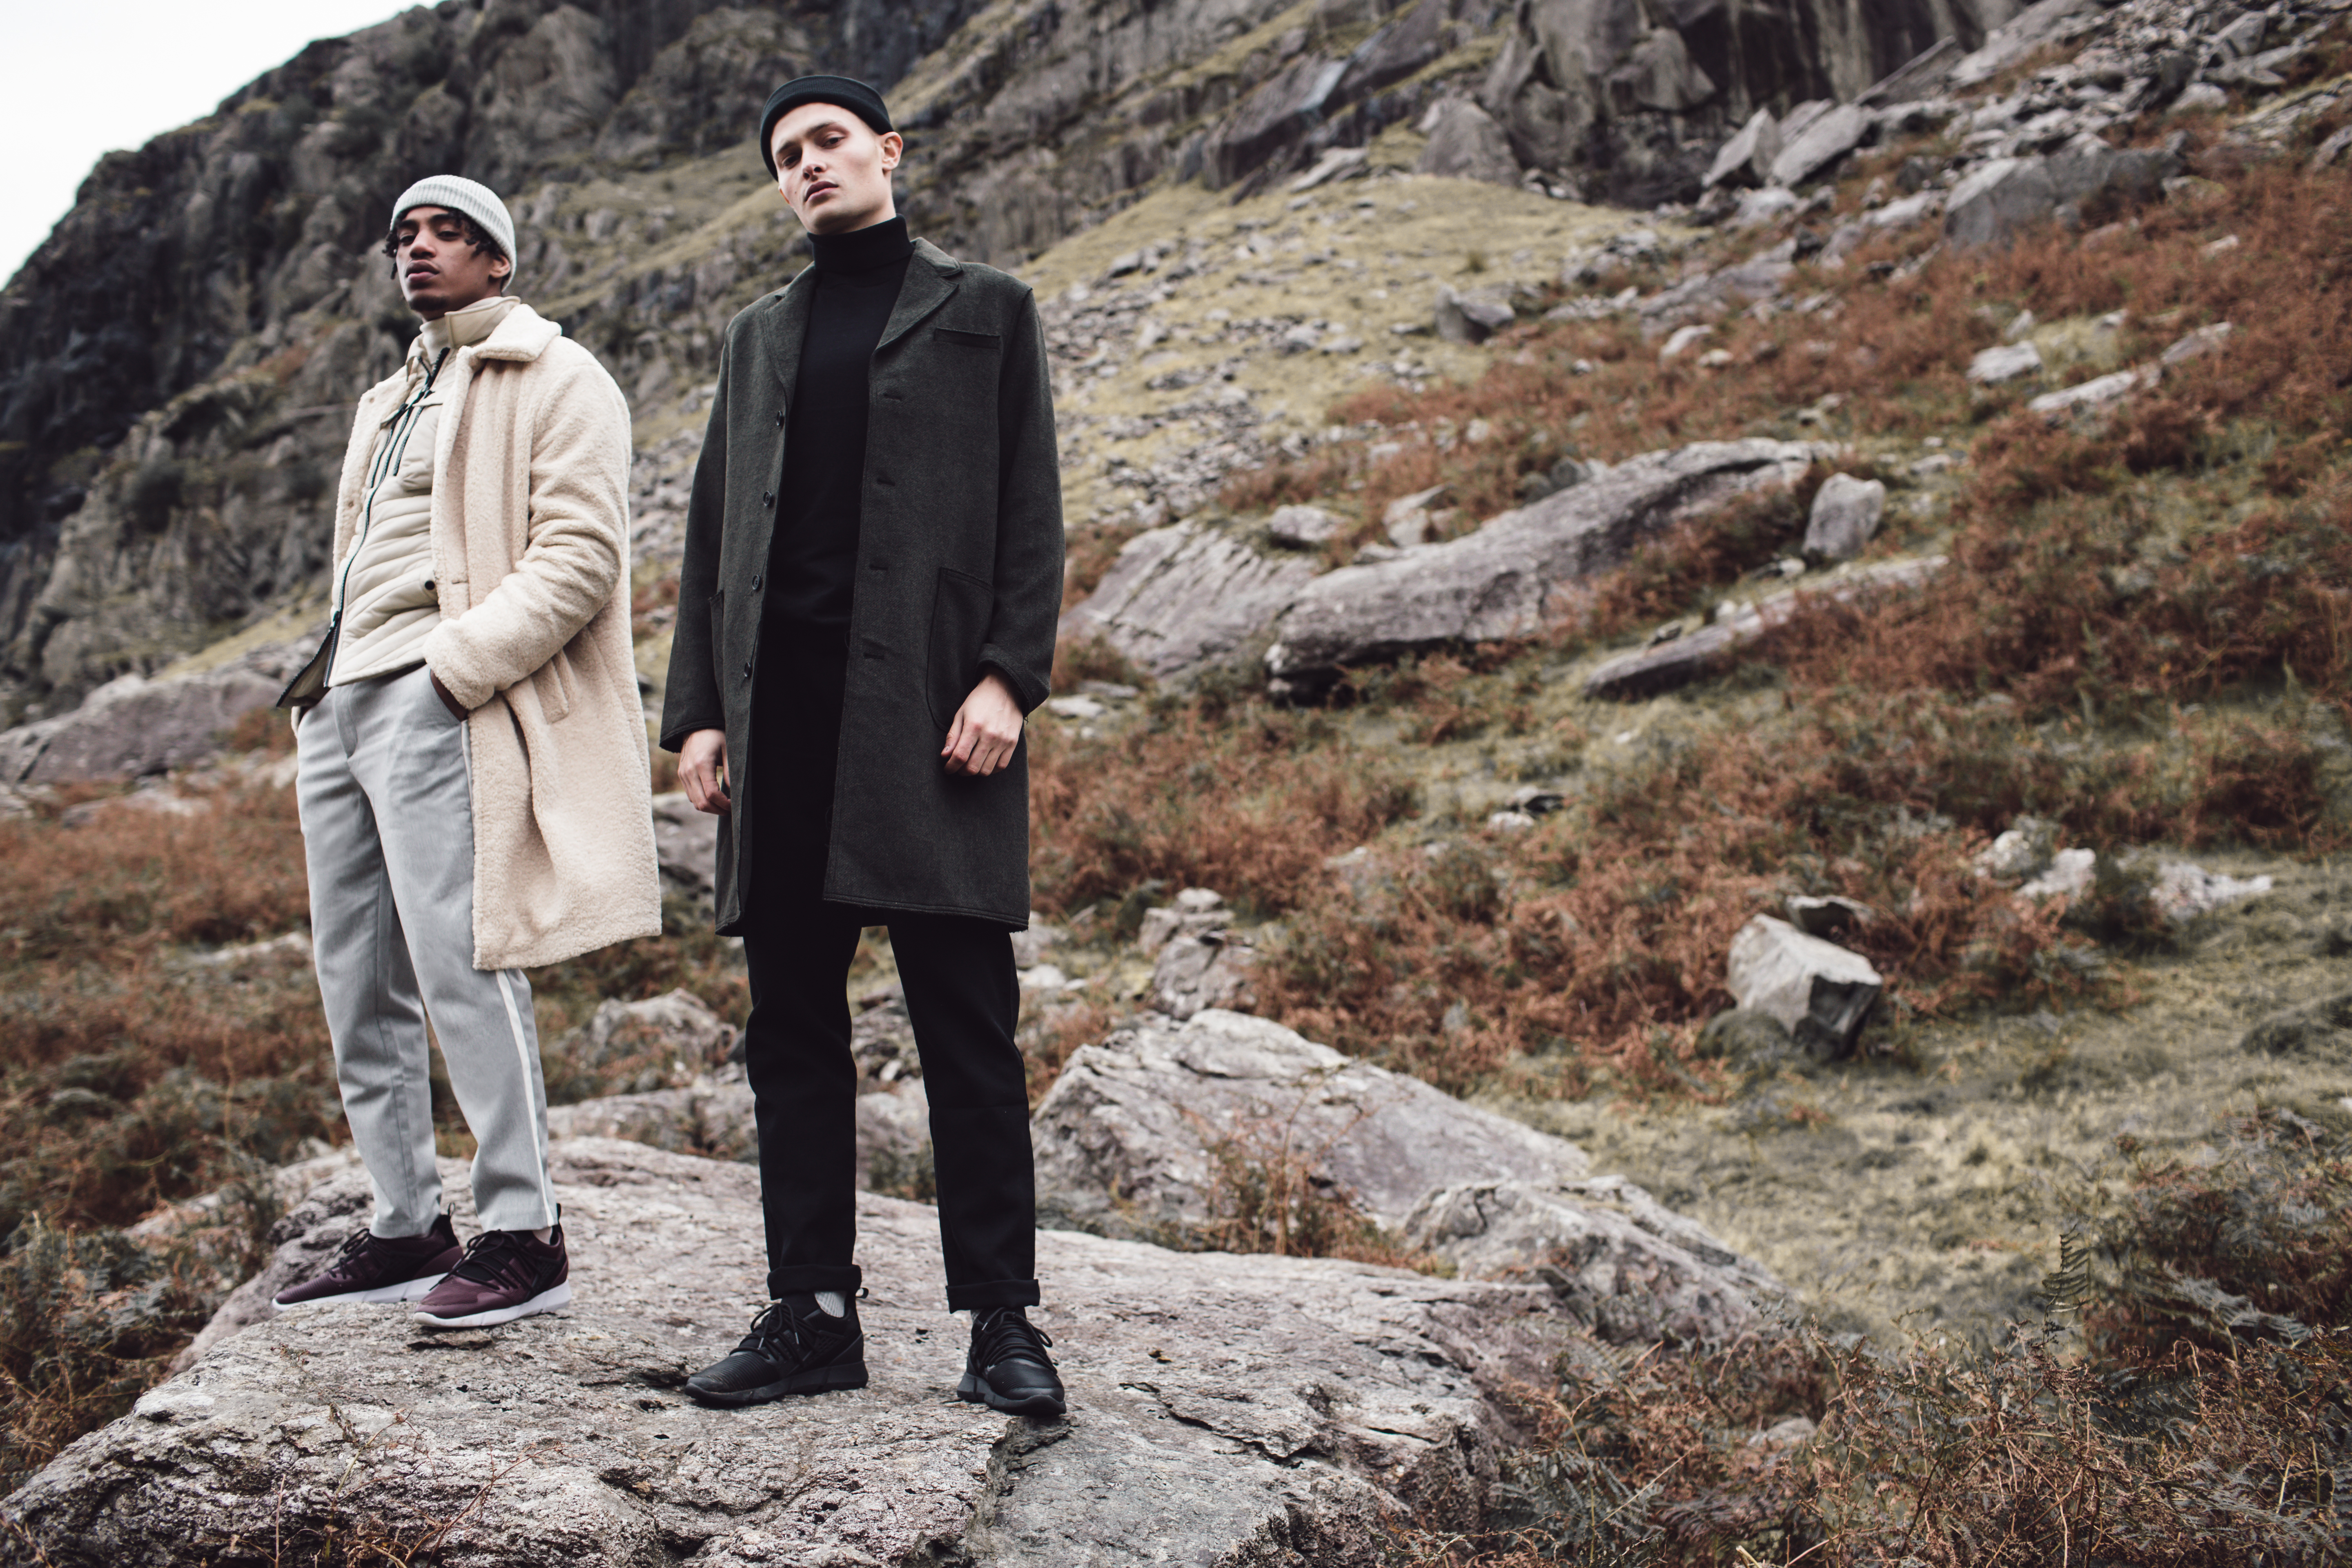 Cortica Drop Their Ascent Collection